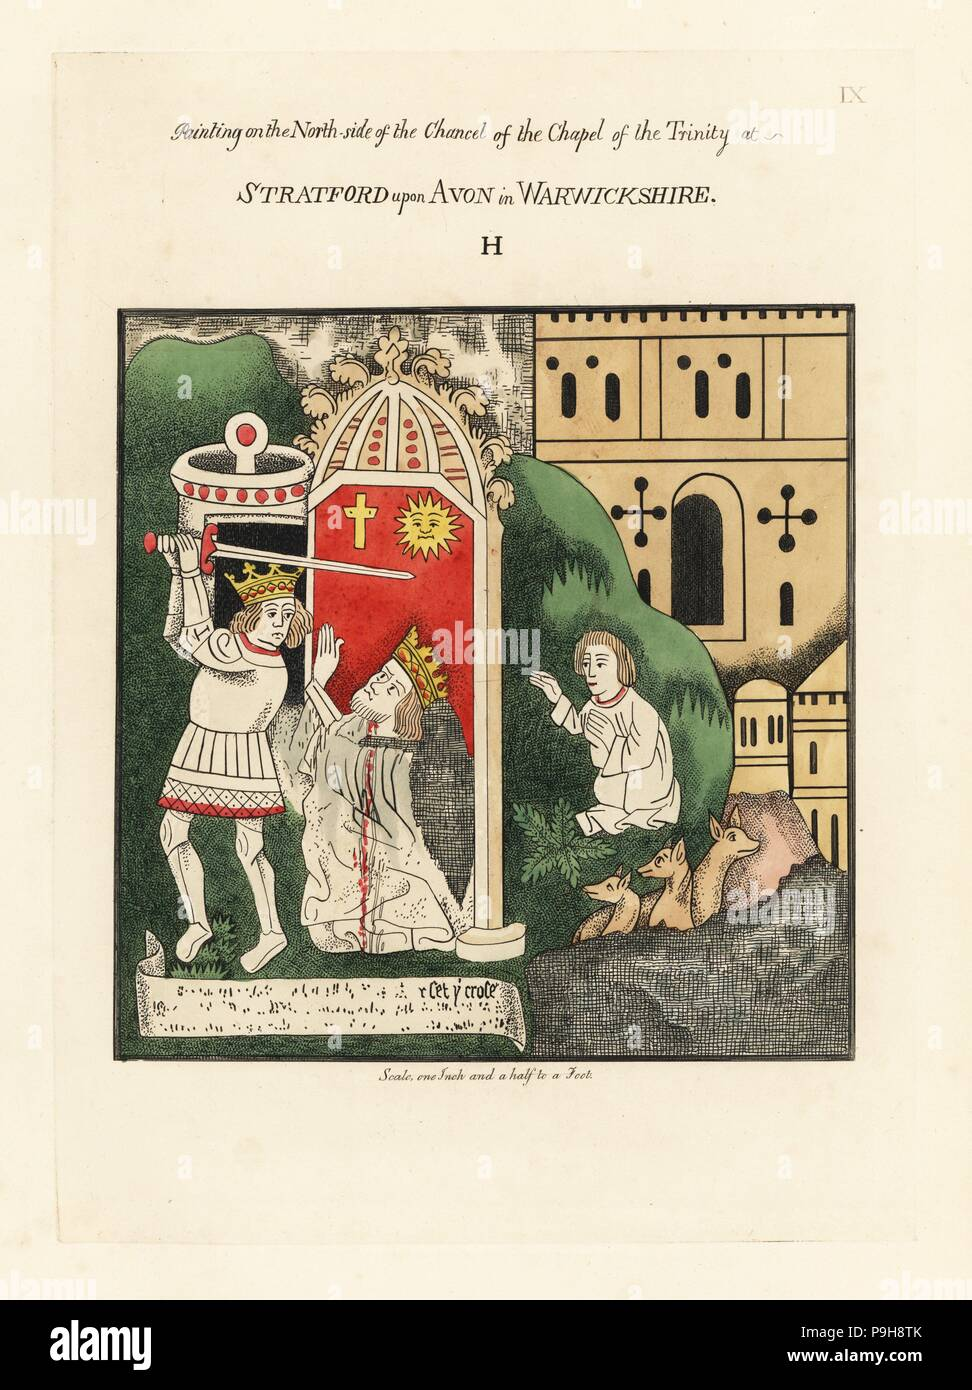 Byzantine Emperor Heraclius decapitating Sassanid Persian King Khosrau II. Handcoloured etching drawn and etched by Thomas Fisher from his Paintings on the Walls of the Chapel of the Trinity, Stratford upon Avon, 1808. - Stock Image